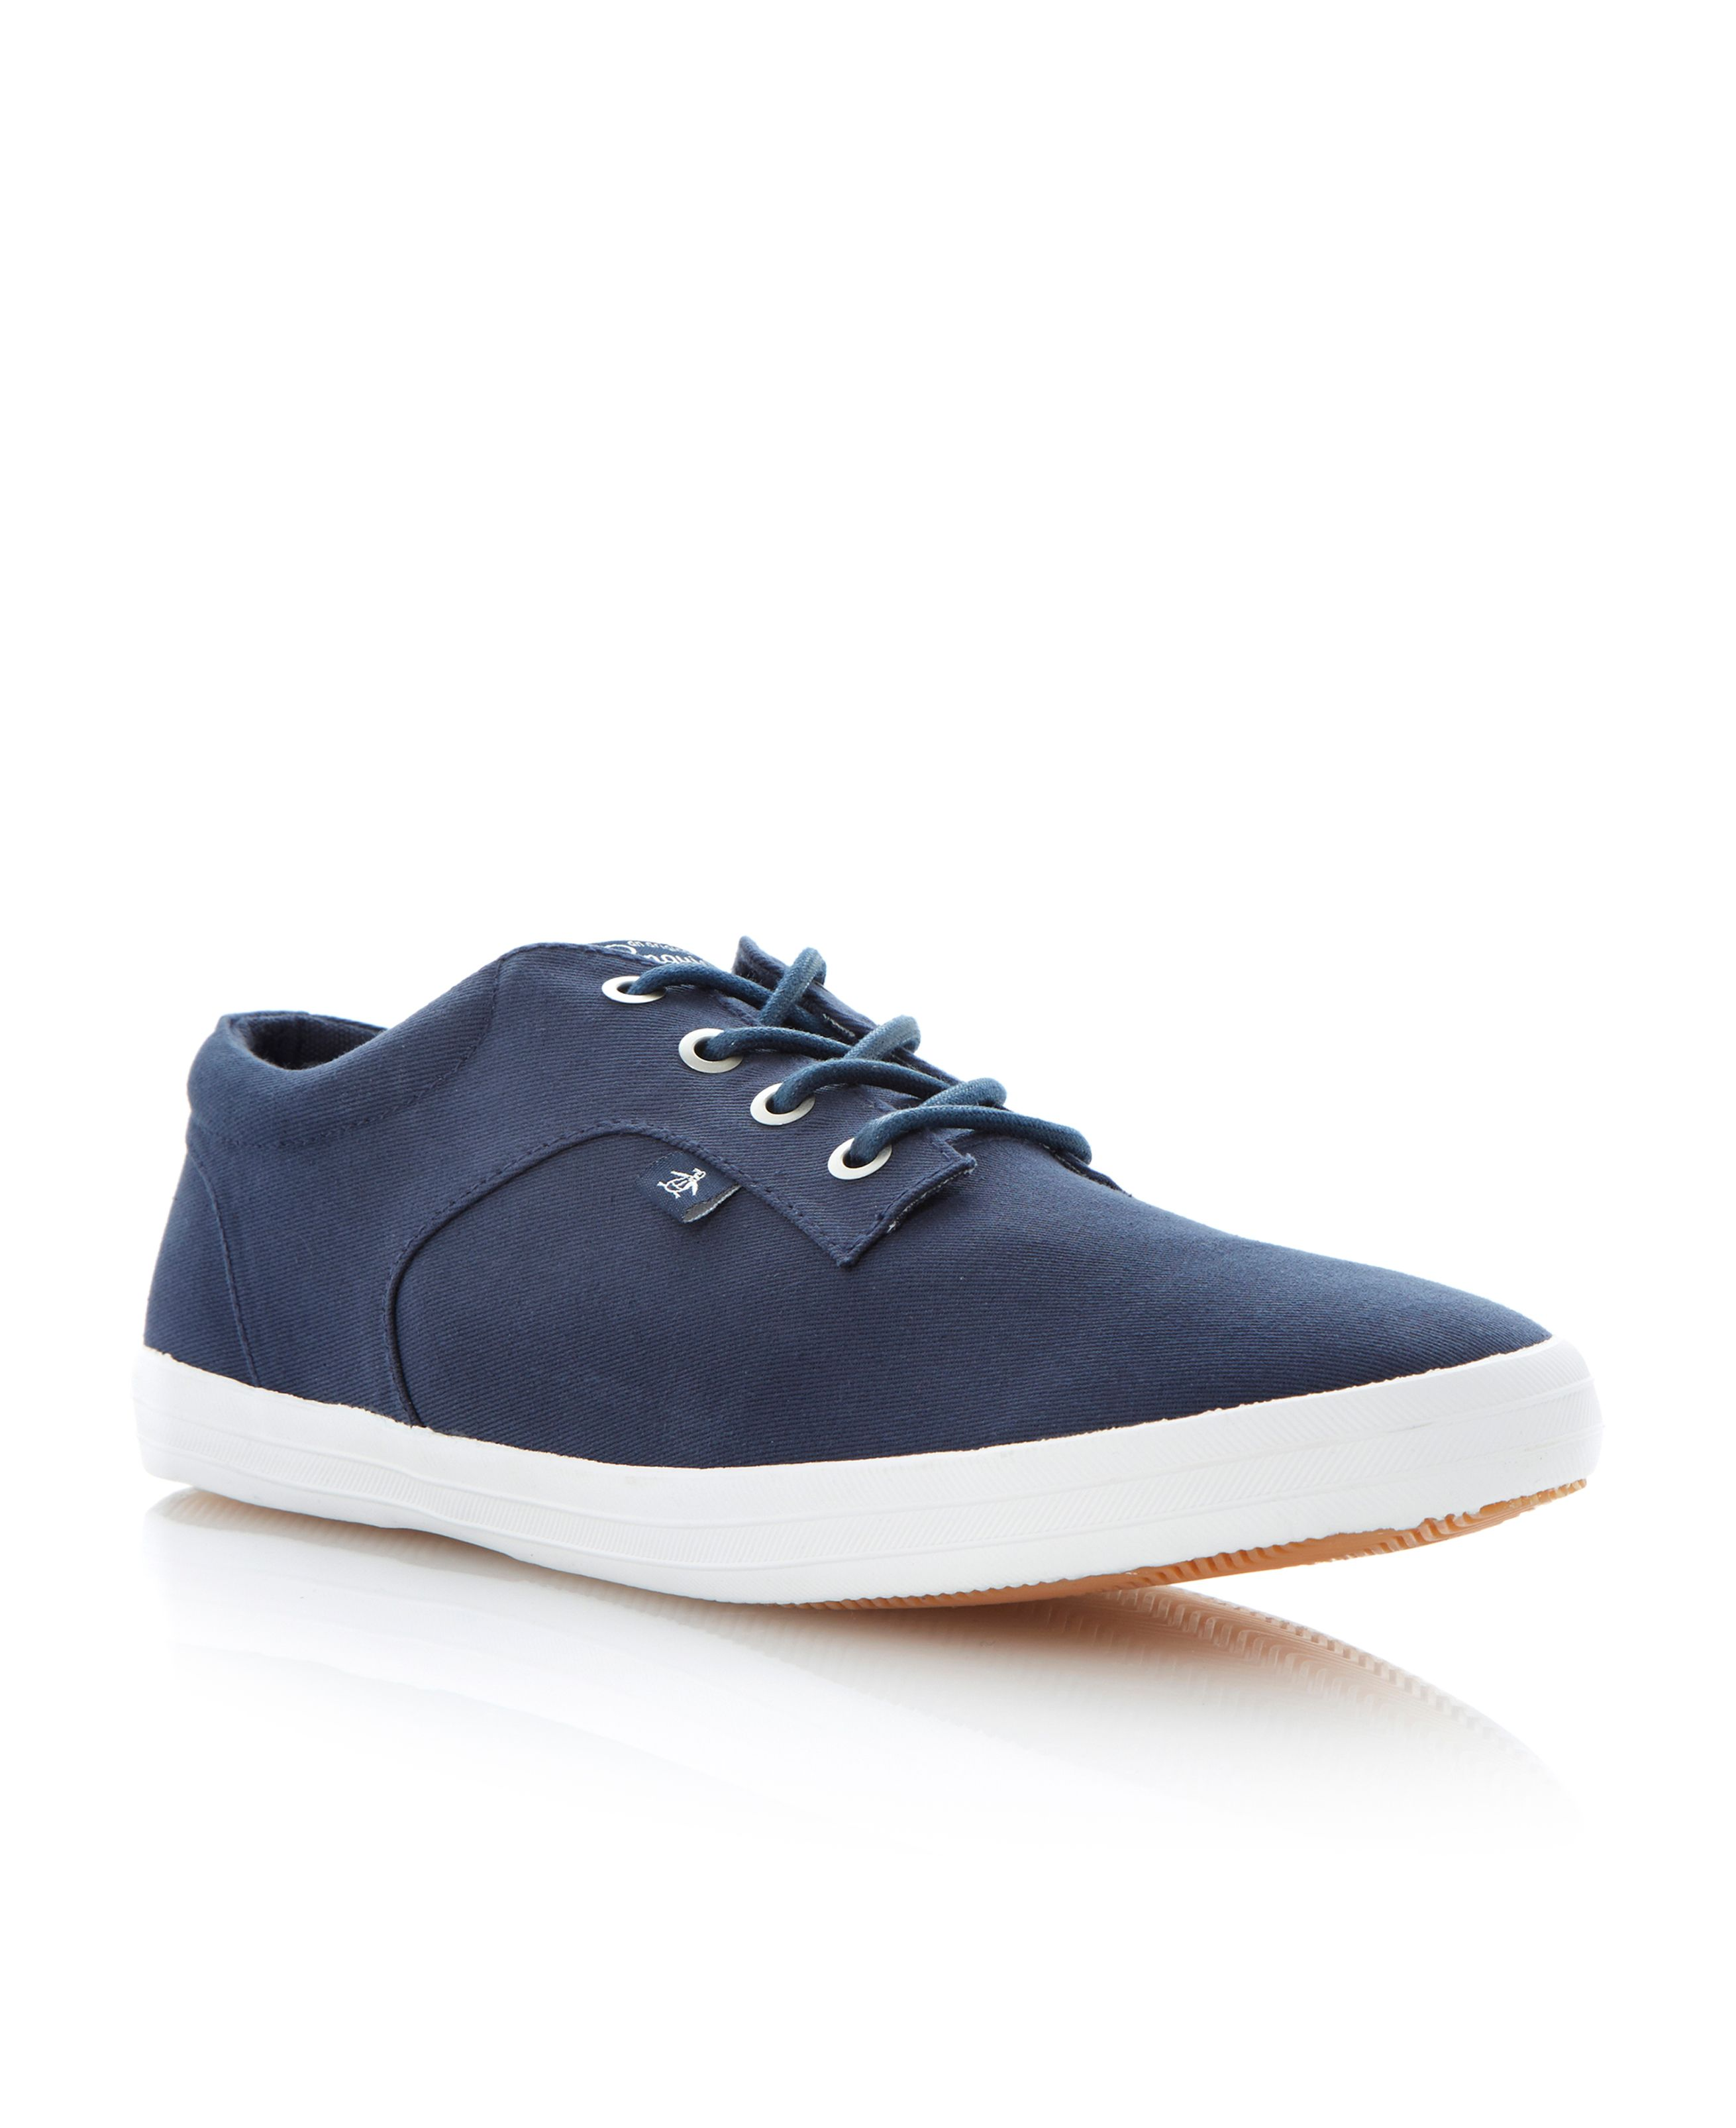 Yale lace up canvas pumps